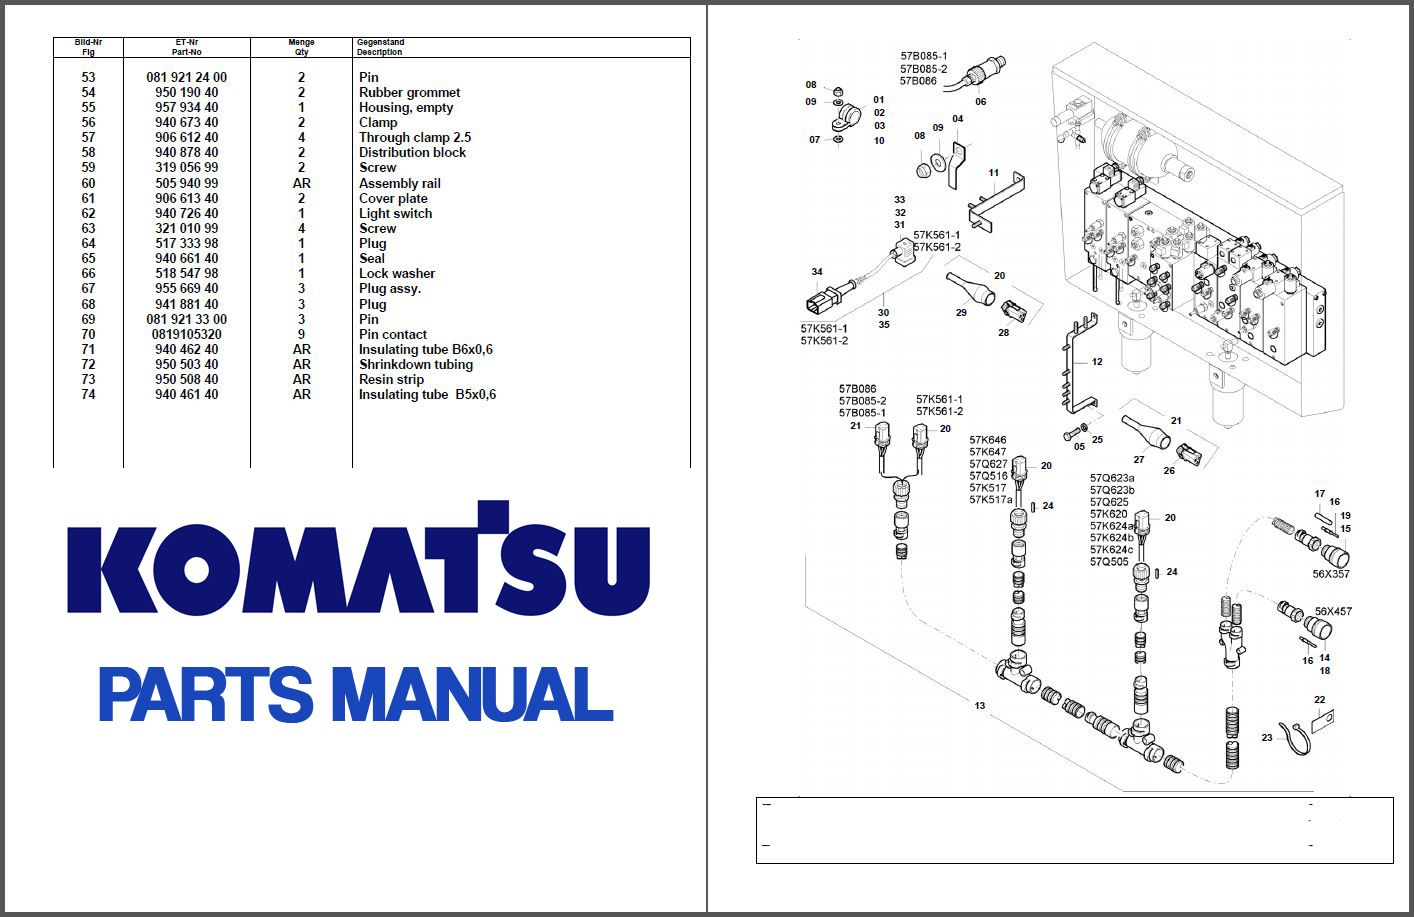 Komatsu Xt460l 3 Sn A5101 Up Parts Manual Crawler Feller Bunchers Harvesters Download Service Manual Repair Manual Pdf Download Komatsu Manual Repair Manuals